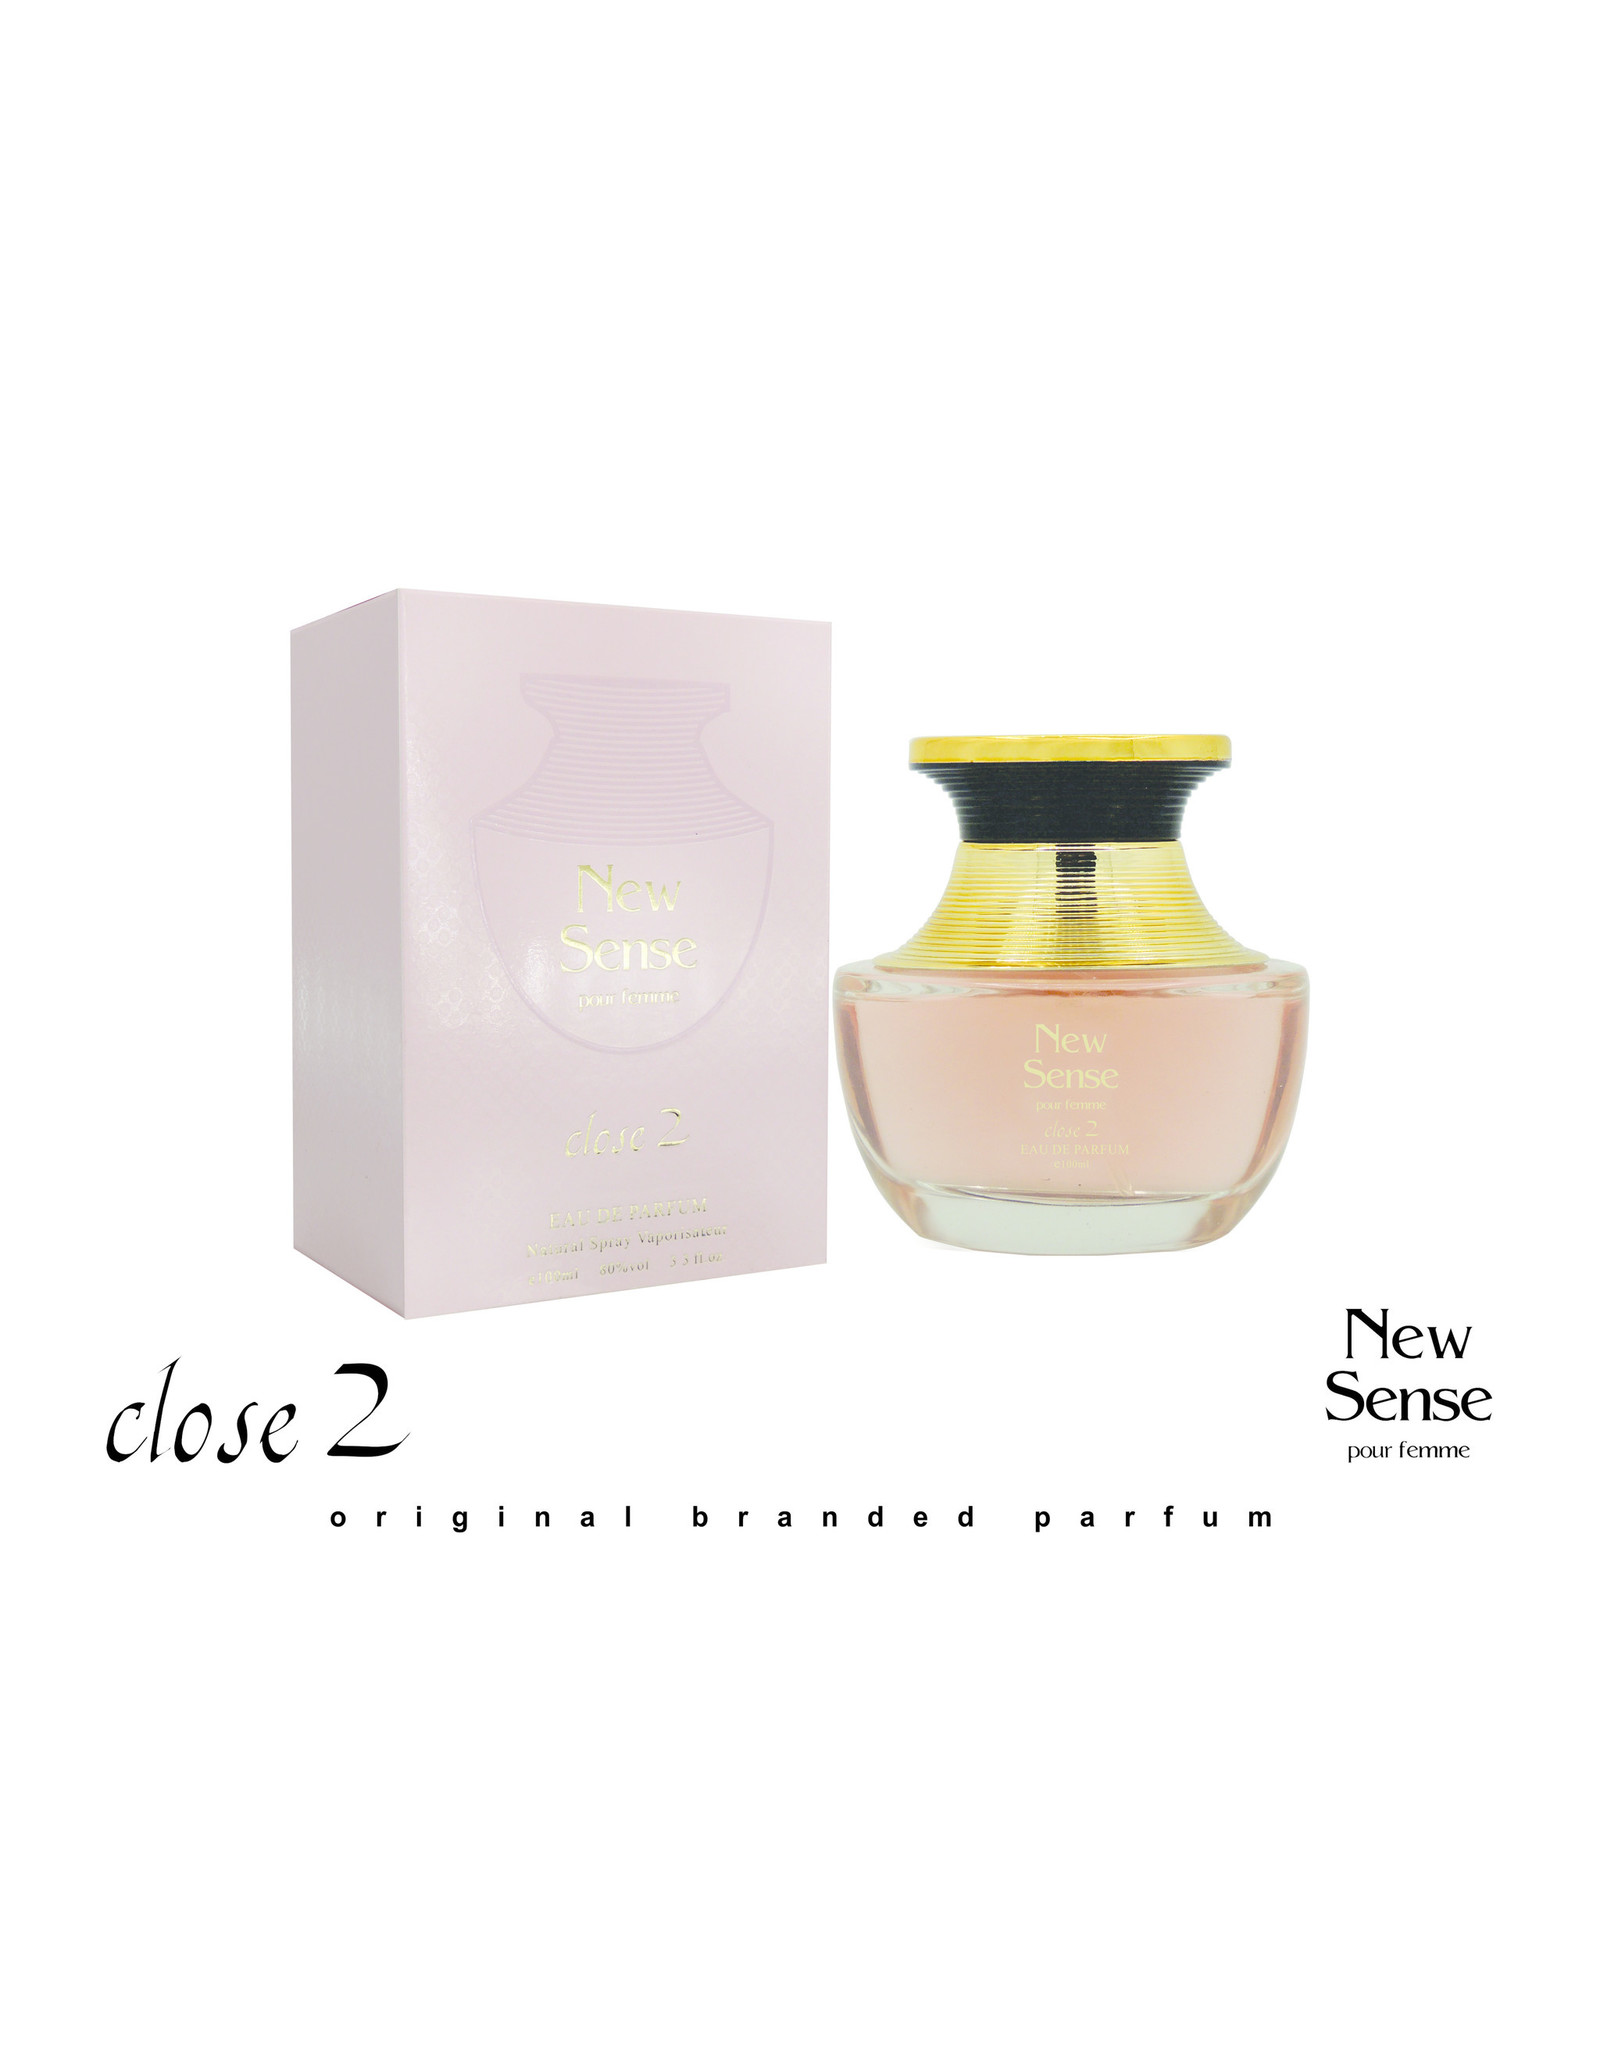 Close 2 parfums New sense EDP 100 ml